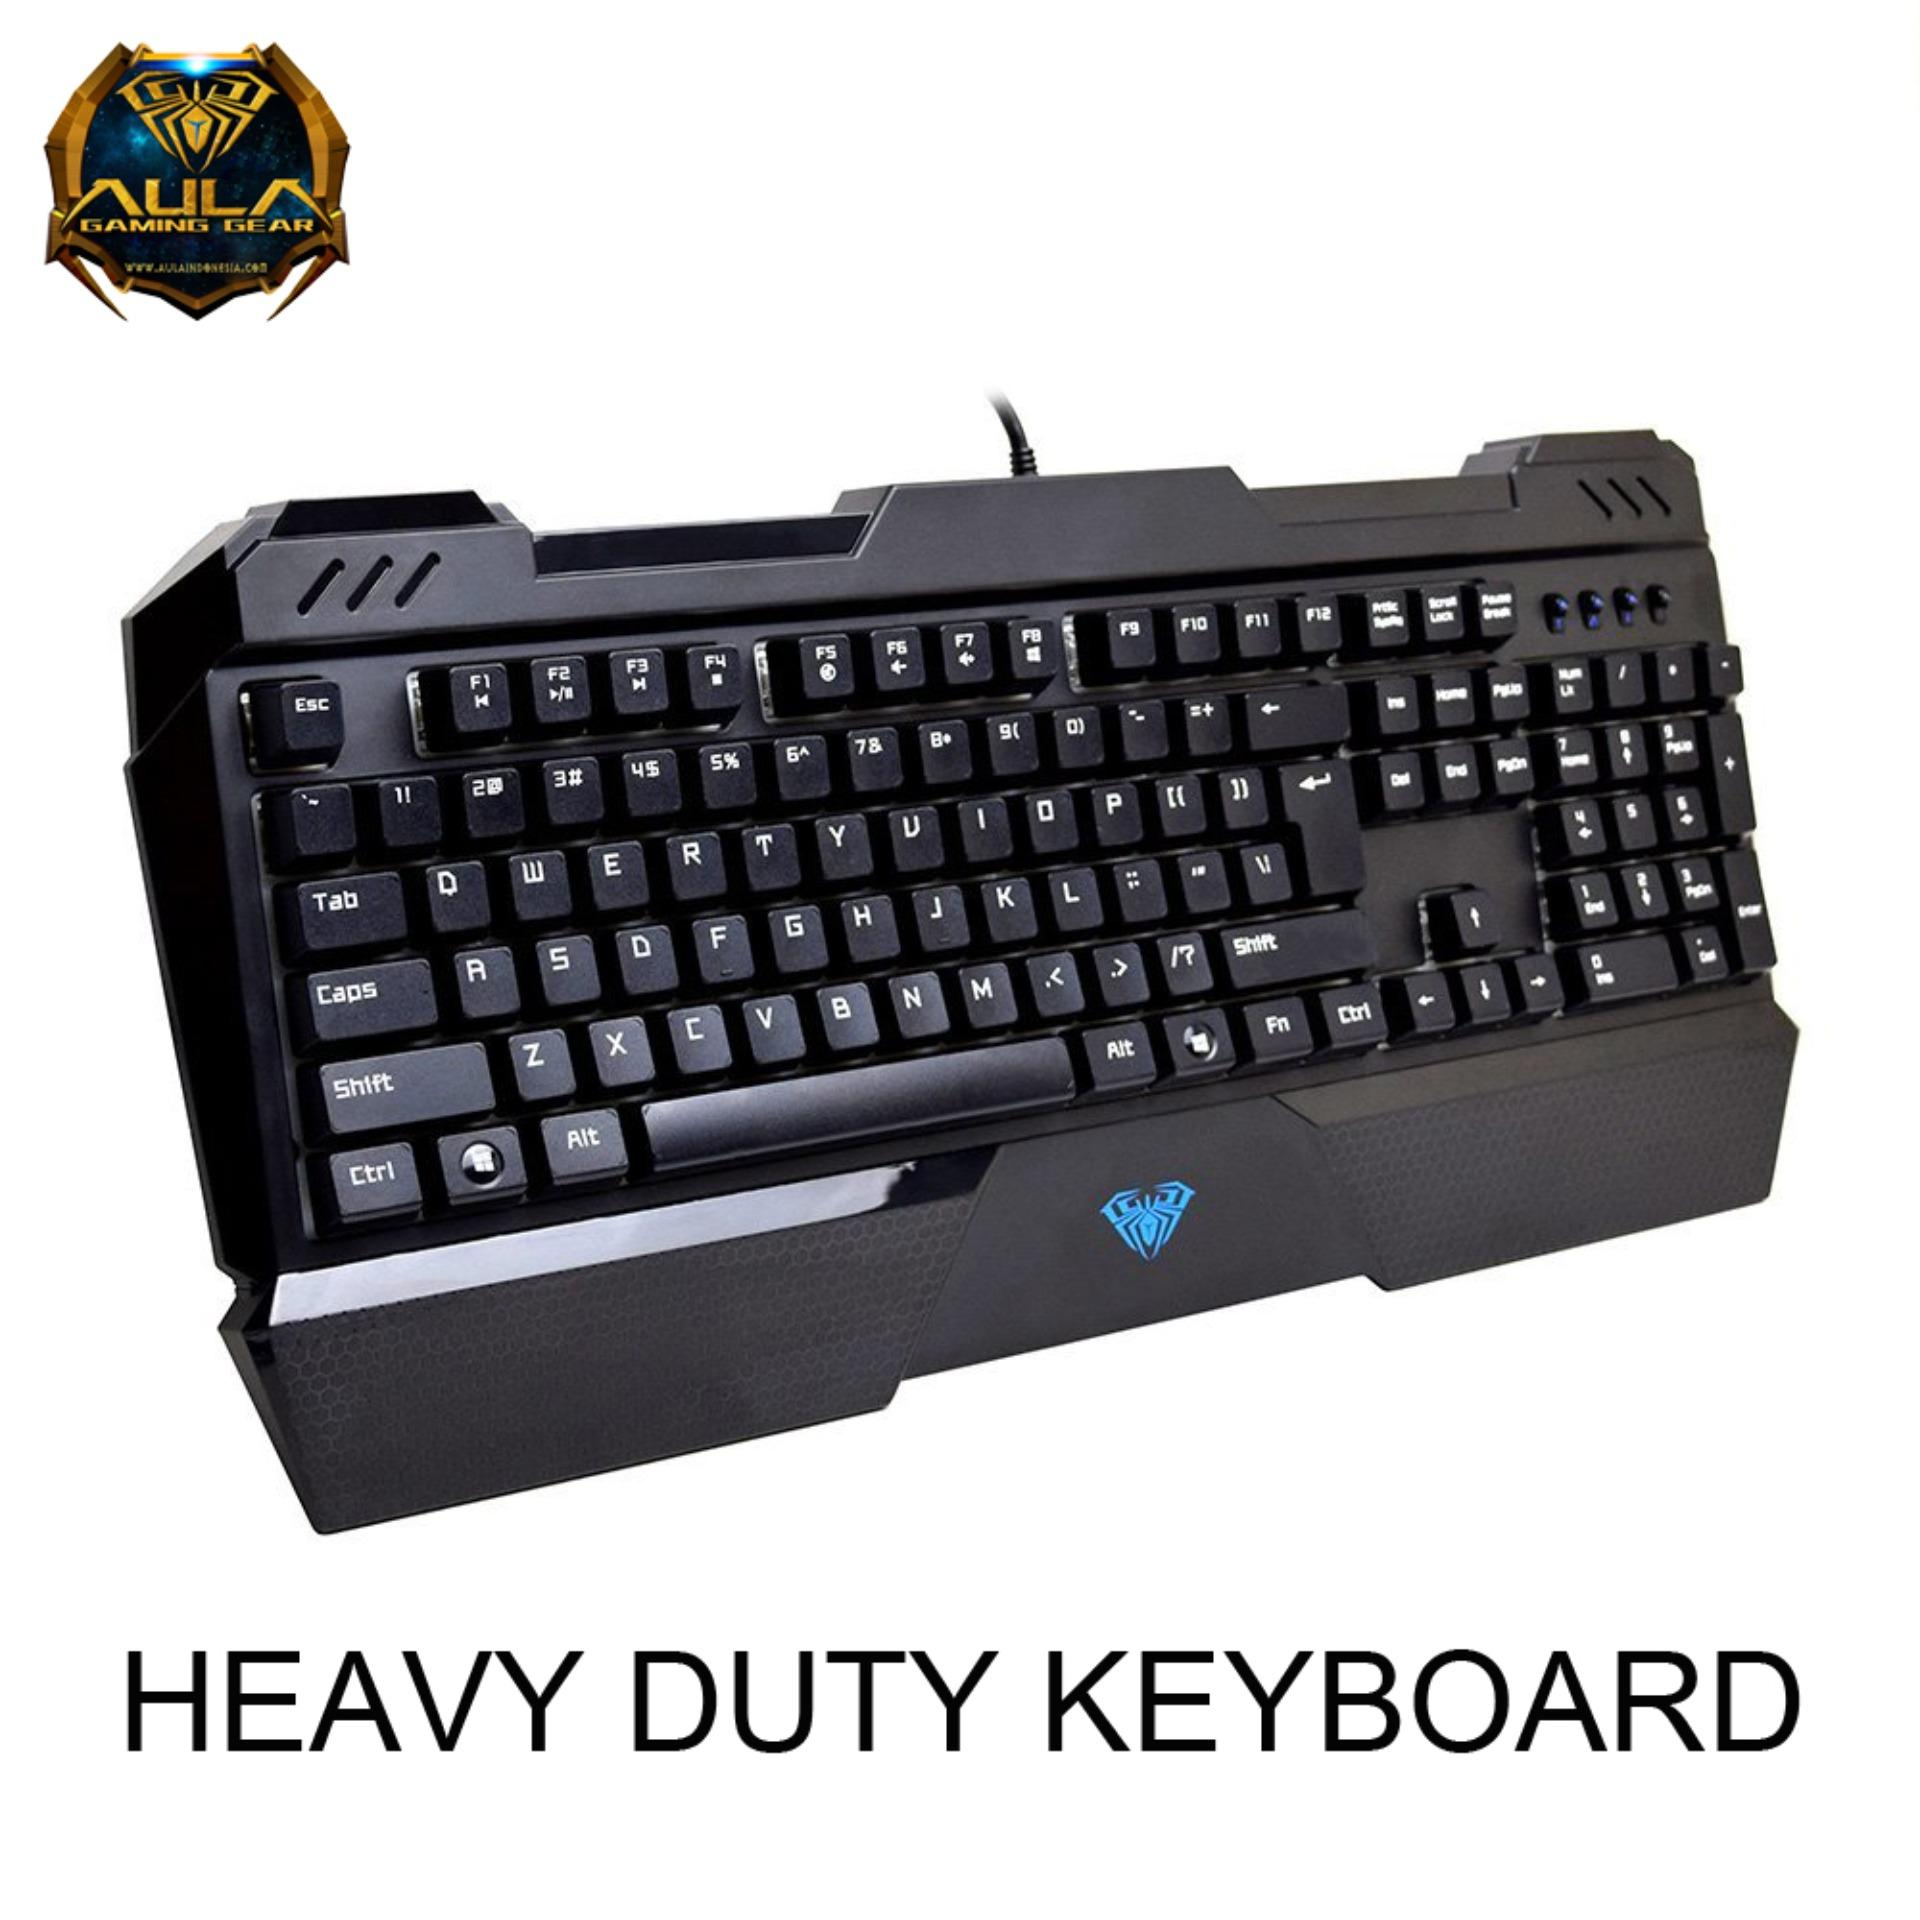 Penawaran Aula F2012 Profesional Blue Axis Wired Mechanical Gaming Keyboard Golden Review Aula